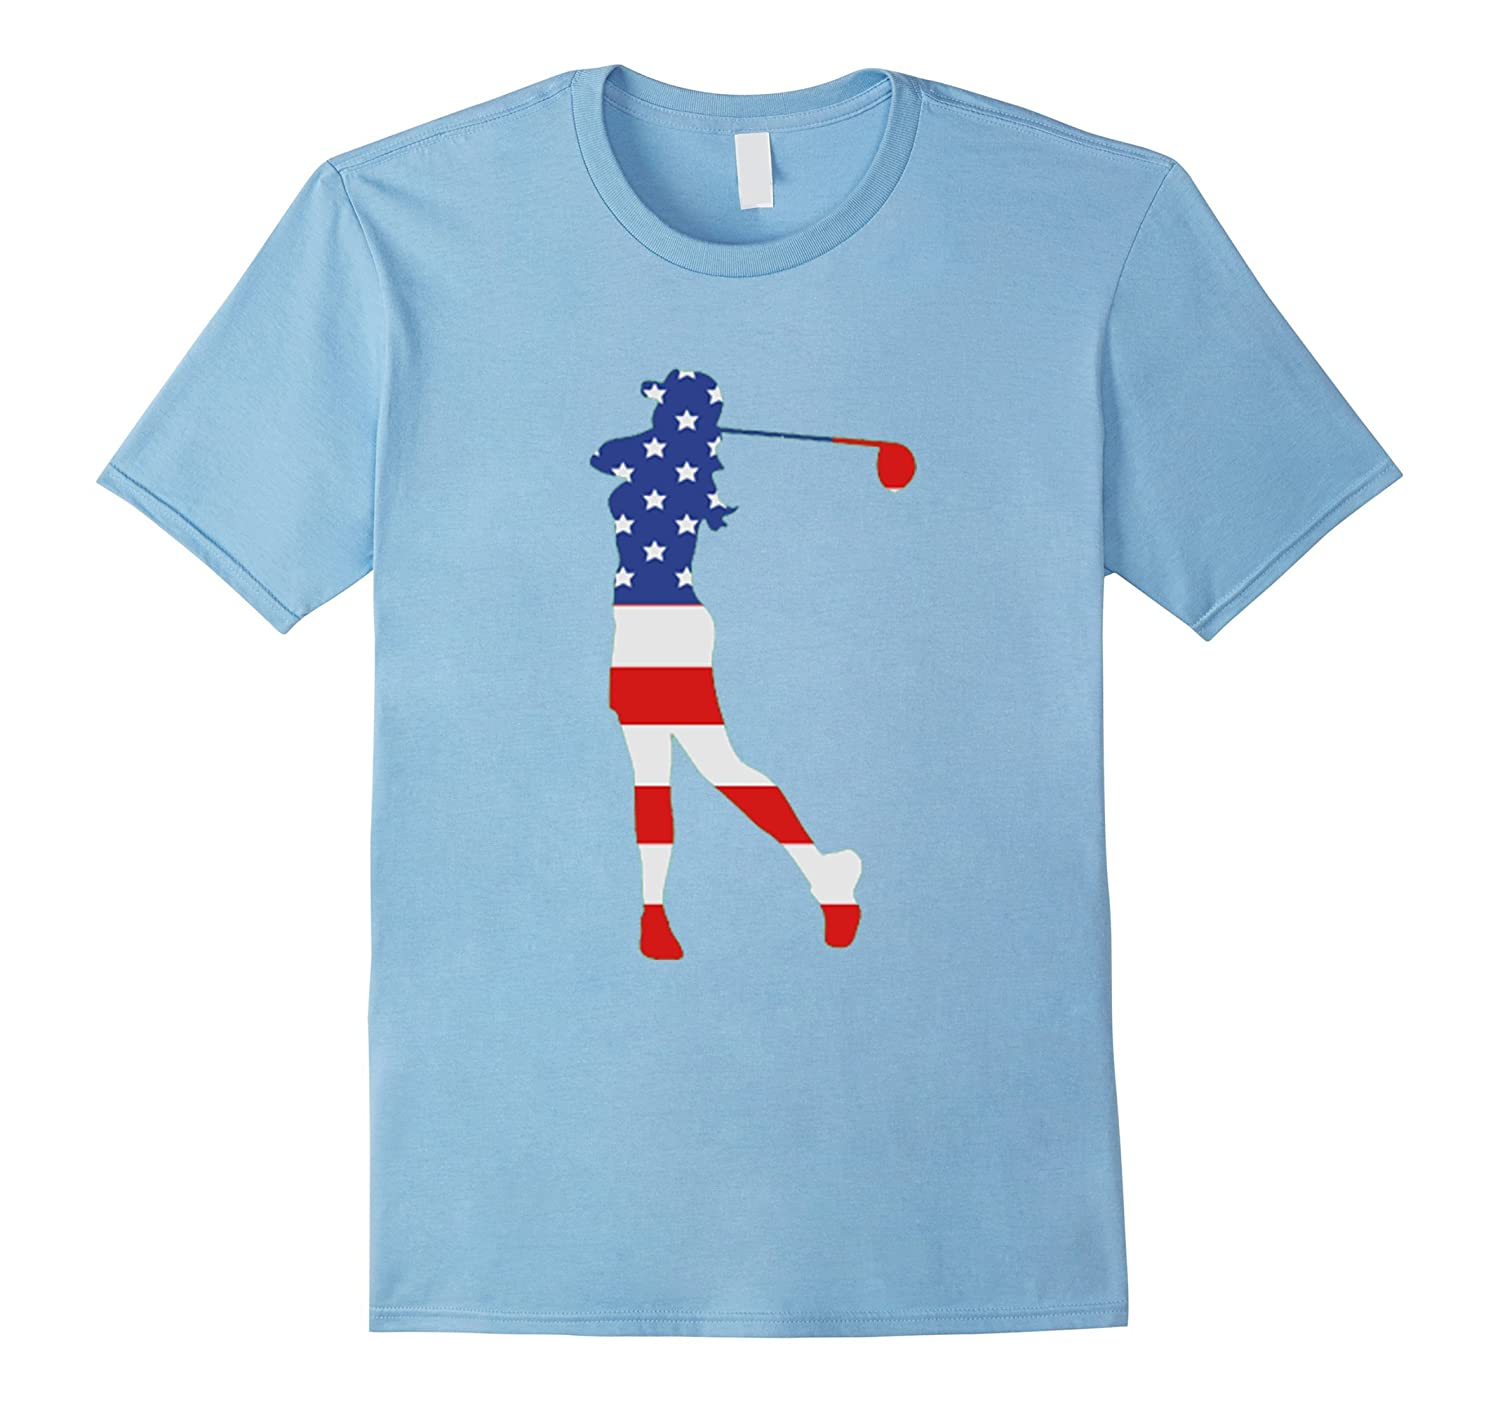 c9e7c736 Patriotic Golf female American flag Shirt for 4th of July ...